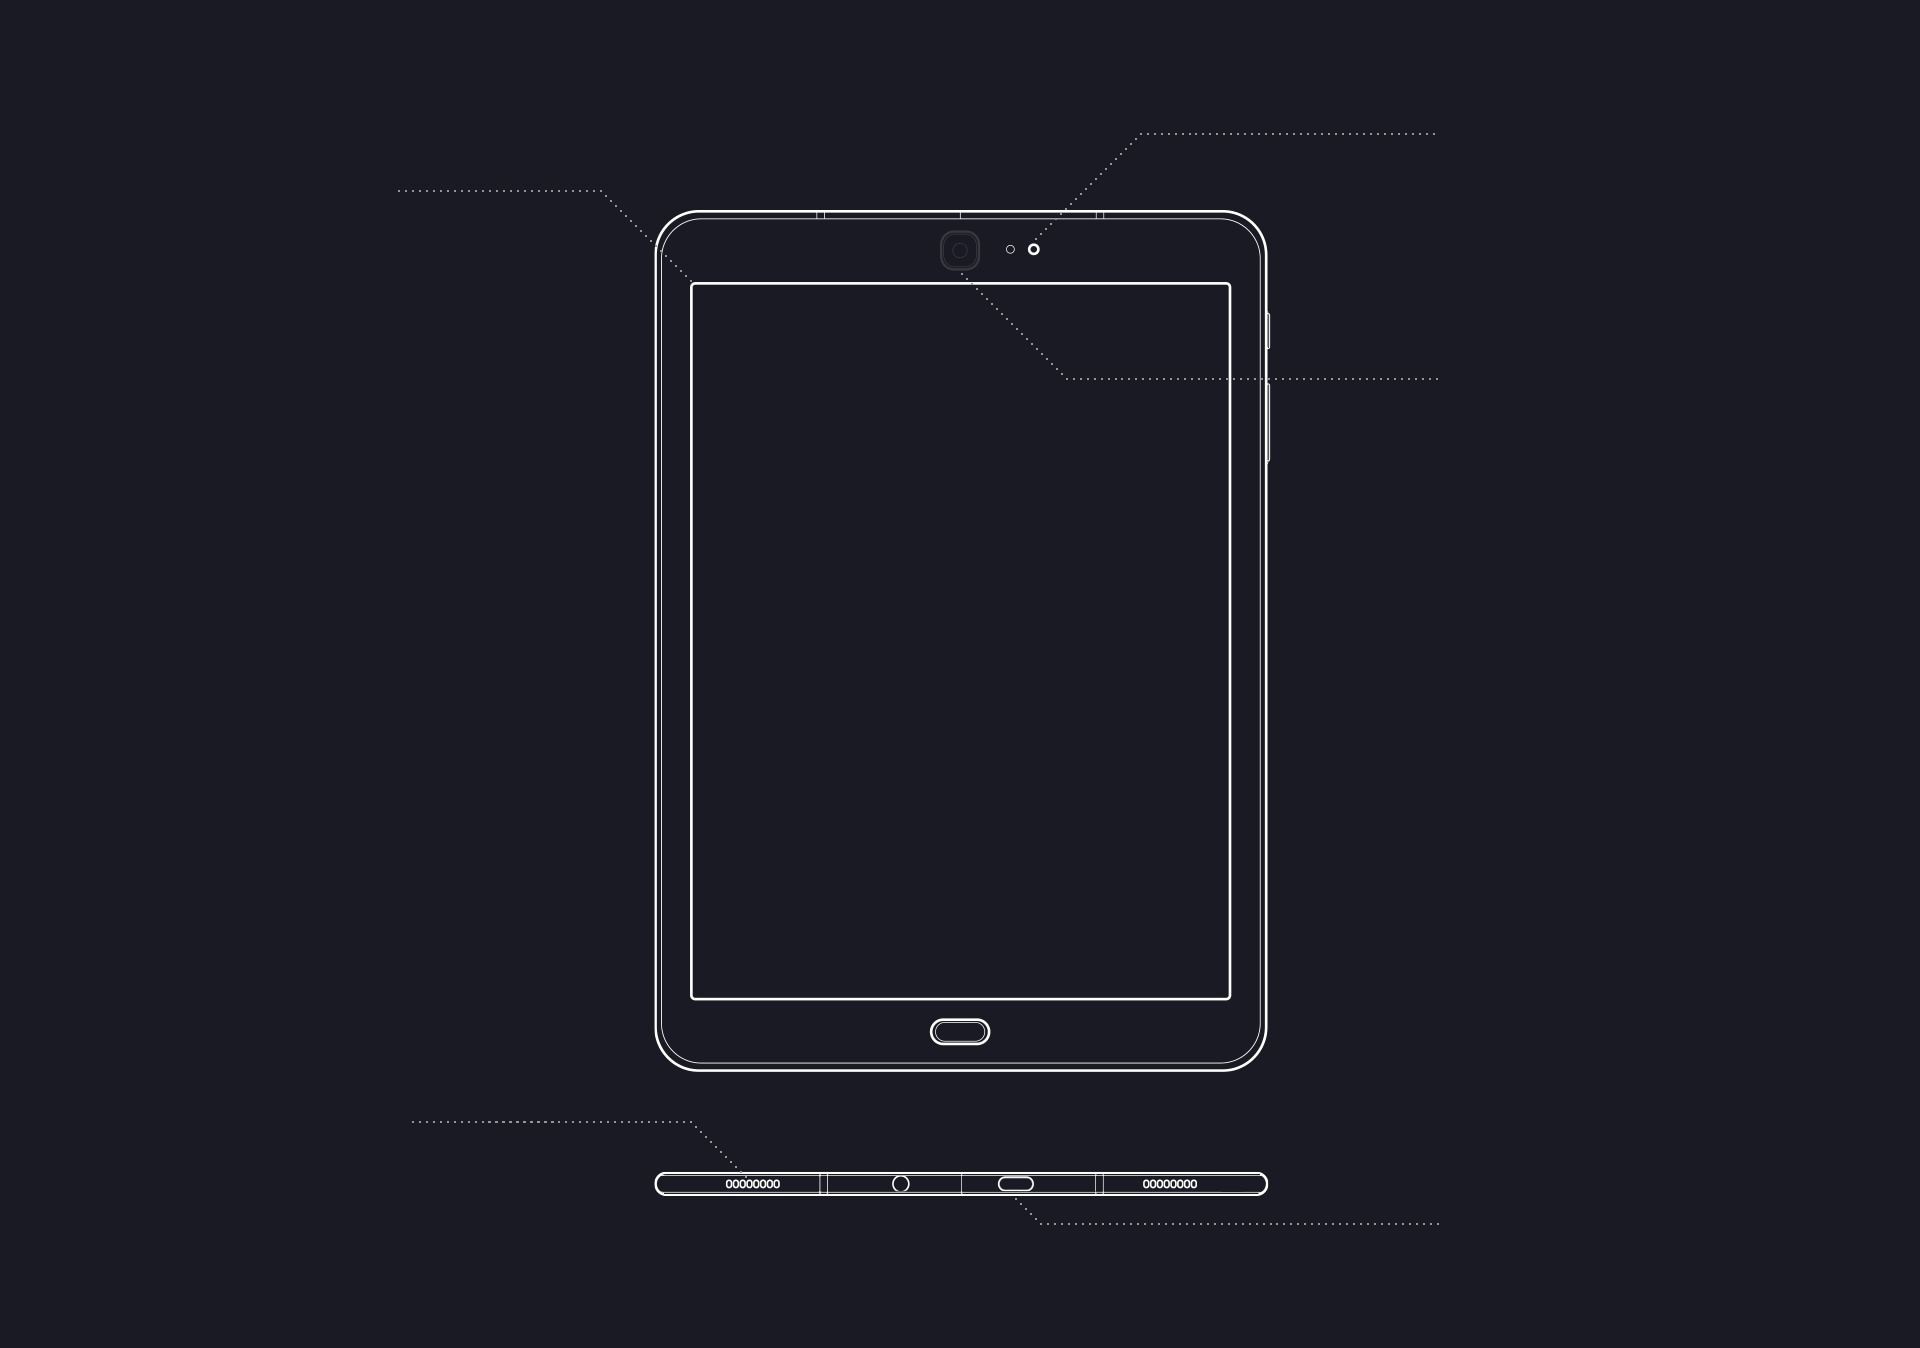 Illustration of front view of Galaxy Tab S3 and Illustration of bottom view of Galaxy Tab S3